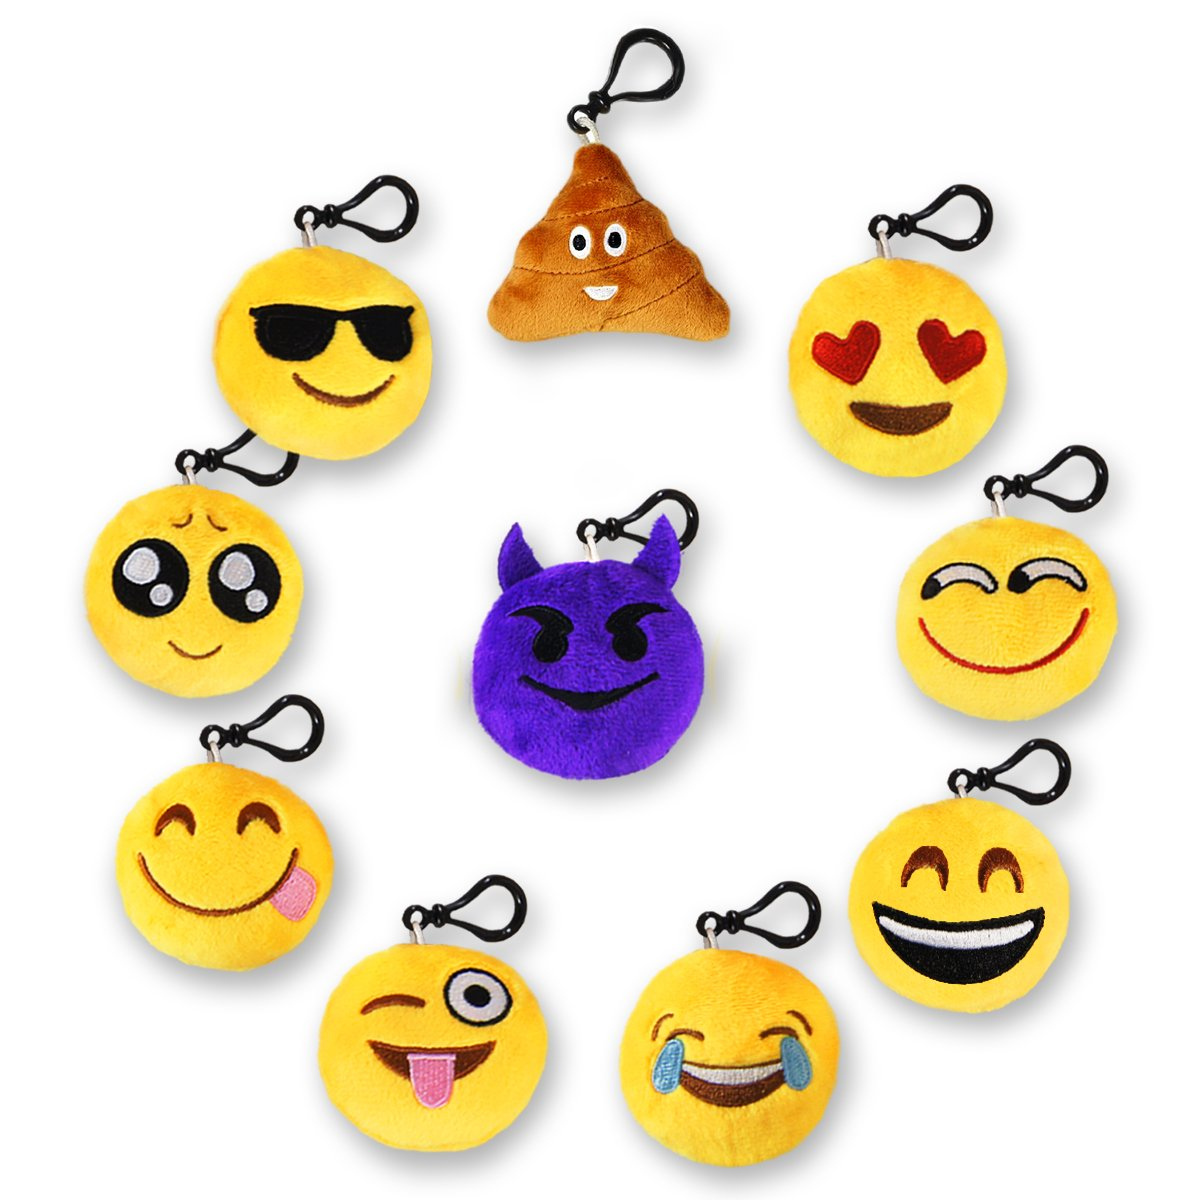 MelonBoat 24 Pack 2 Emoji Plush Keychain Mini Pillows Backpack Clips Emoticon Poop Birthday